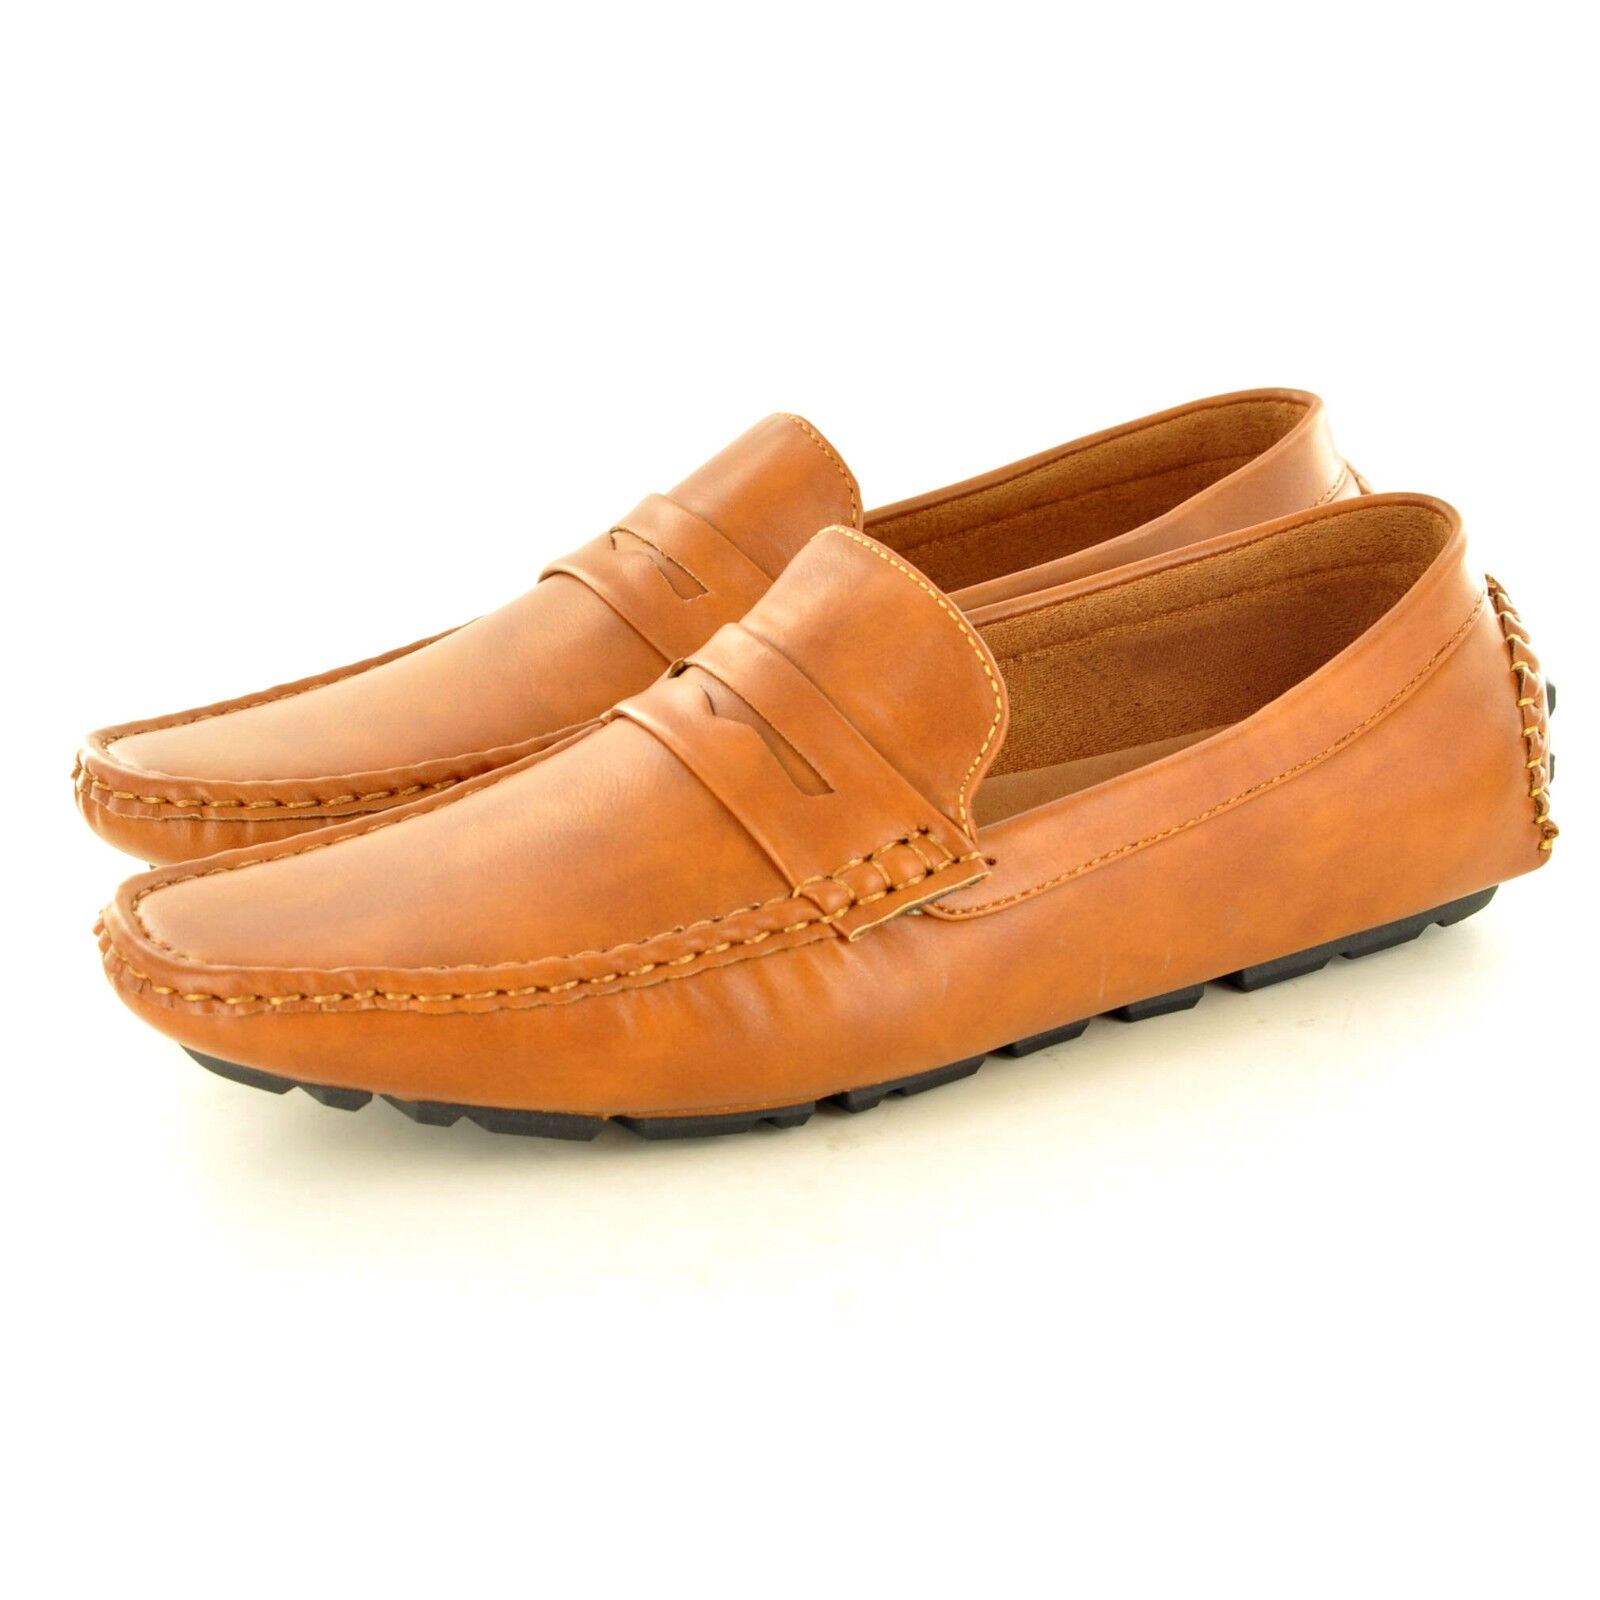 Wide Fitting Shoes Online Australia